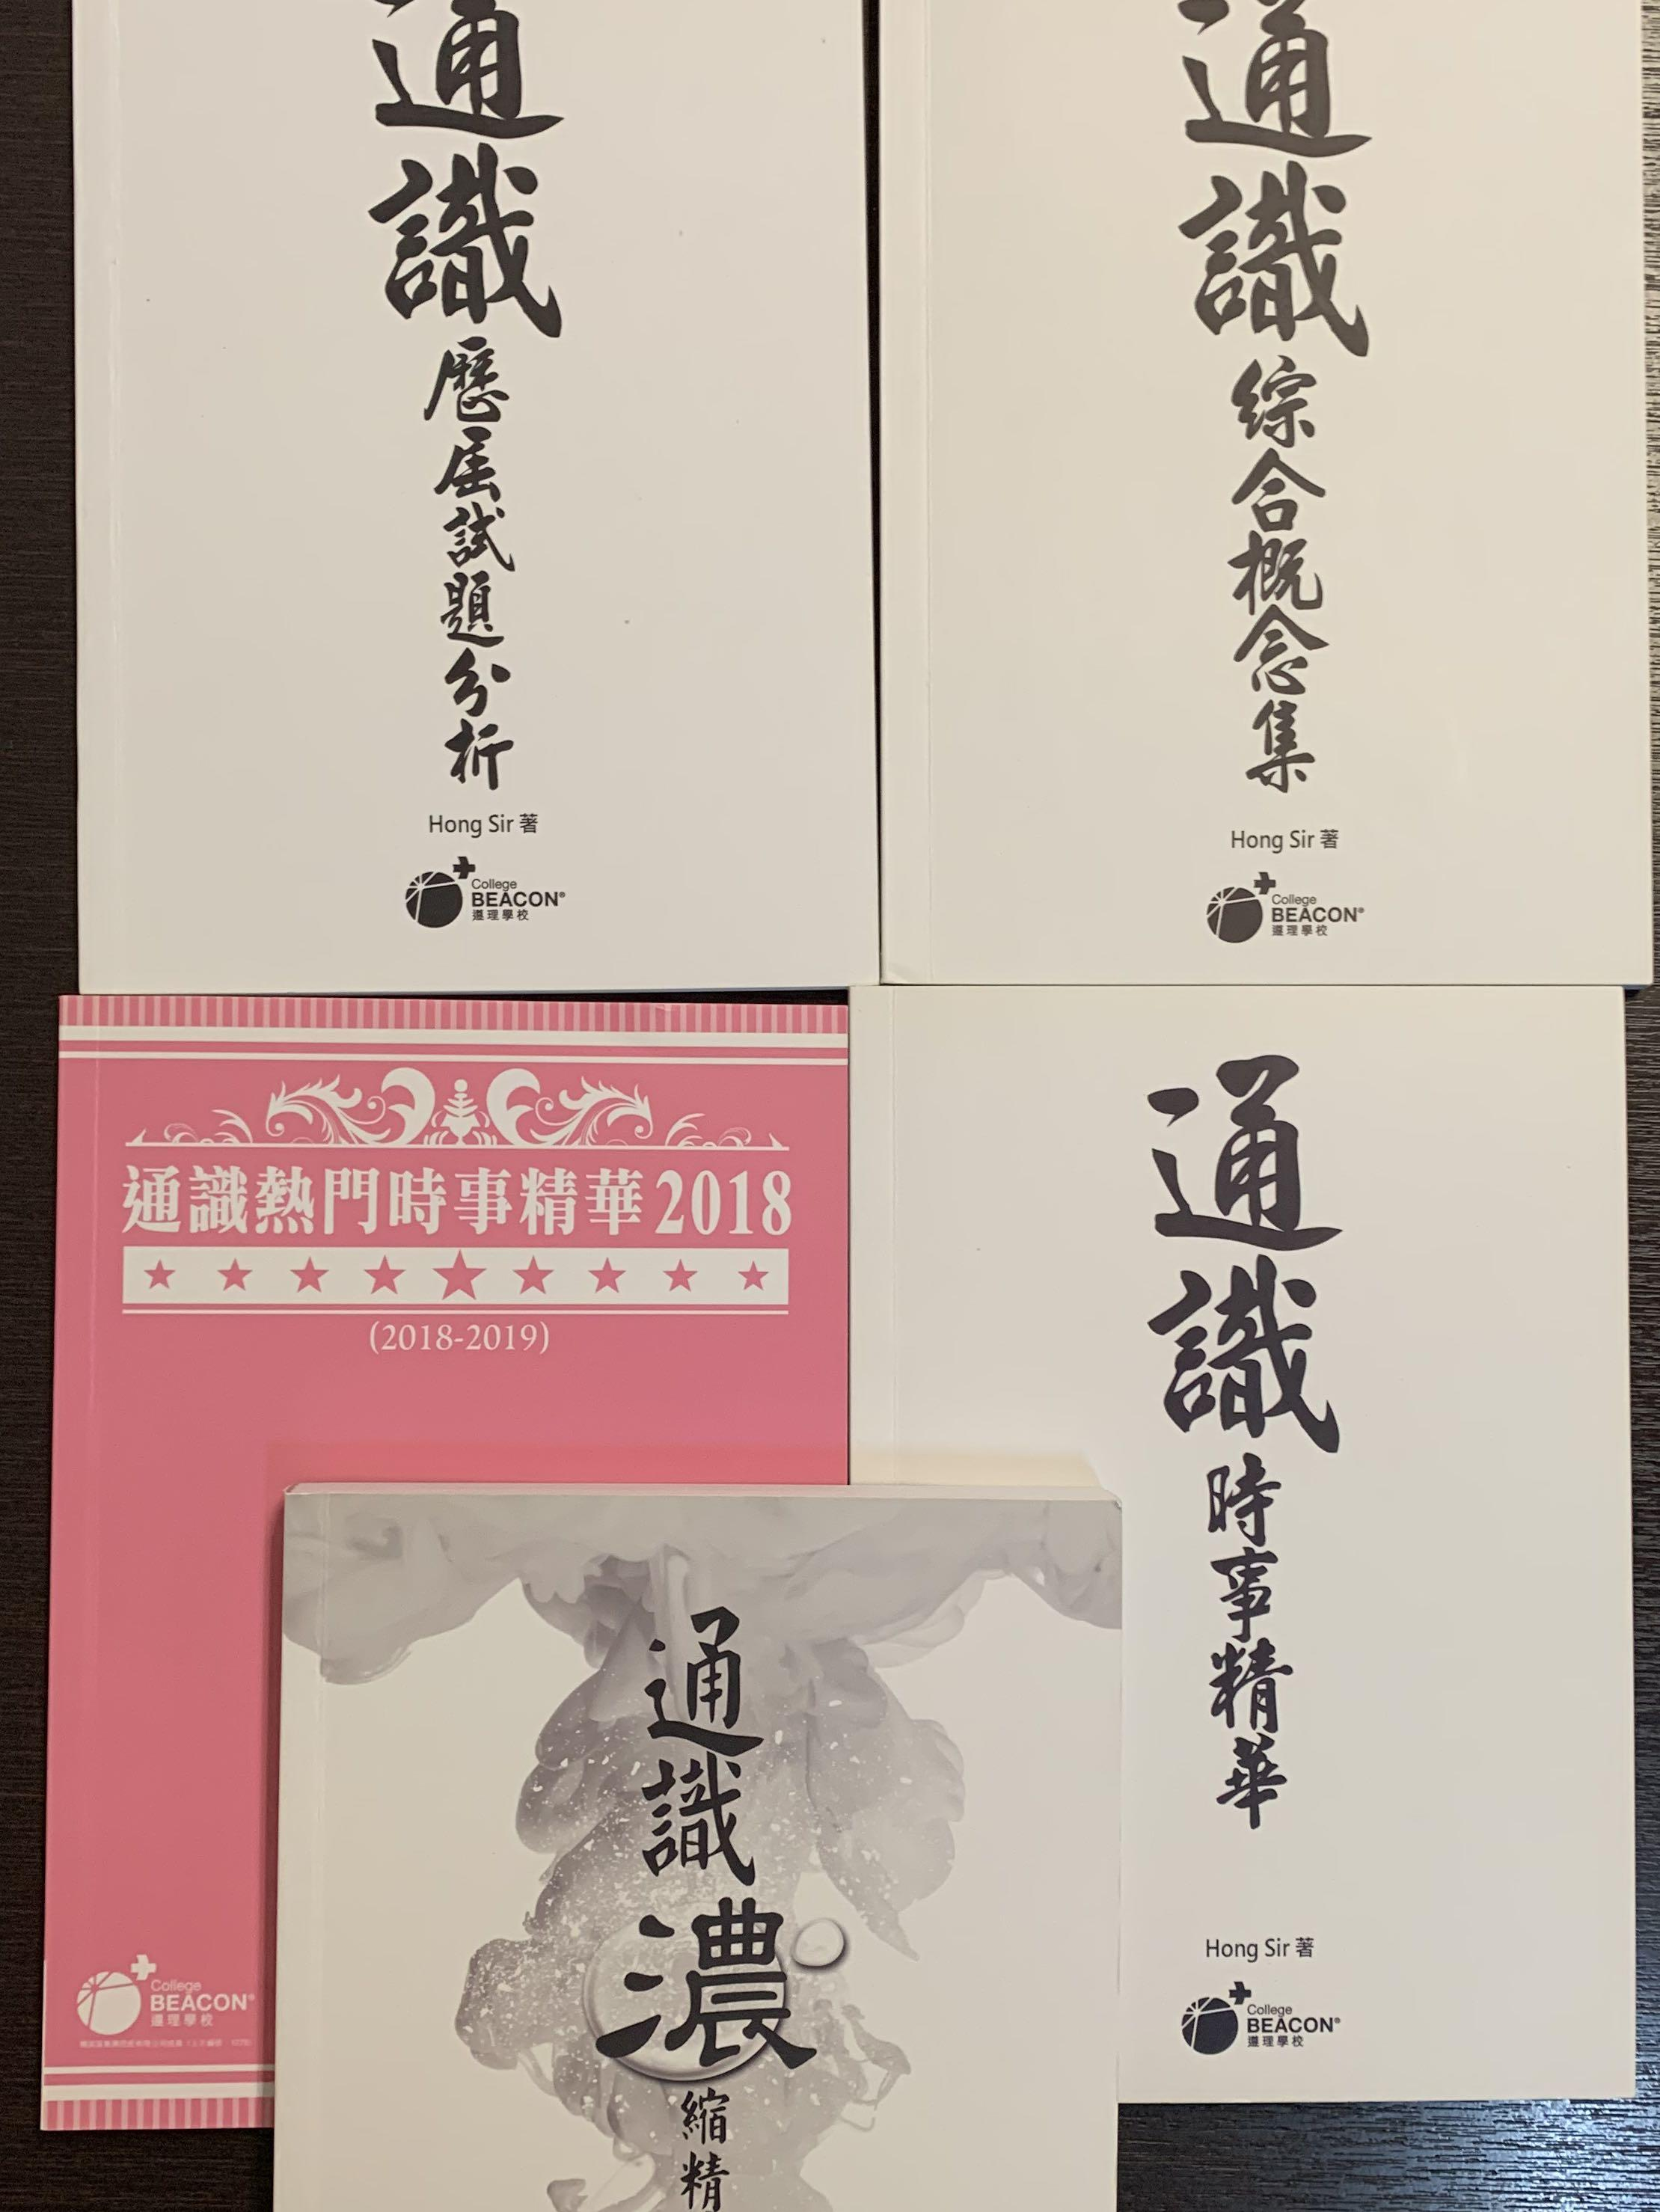 Hong Sir Regular Notes Set (主筆記17本 + 書仔5本 ) (2018-19 S.6 Version) 中文版